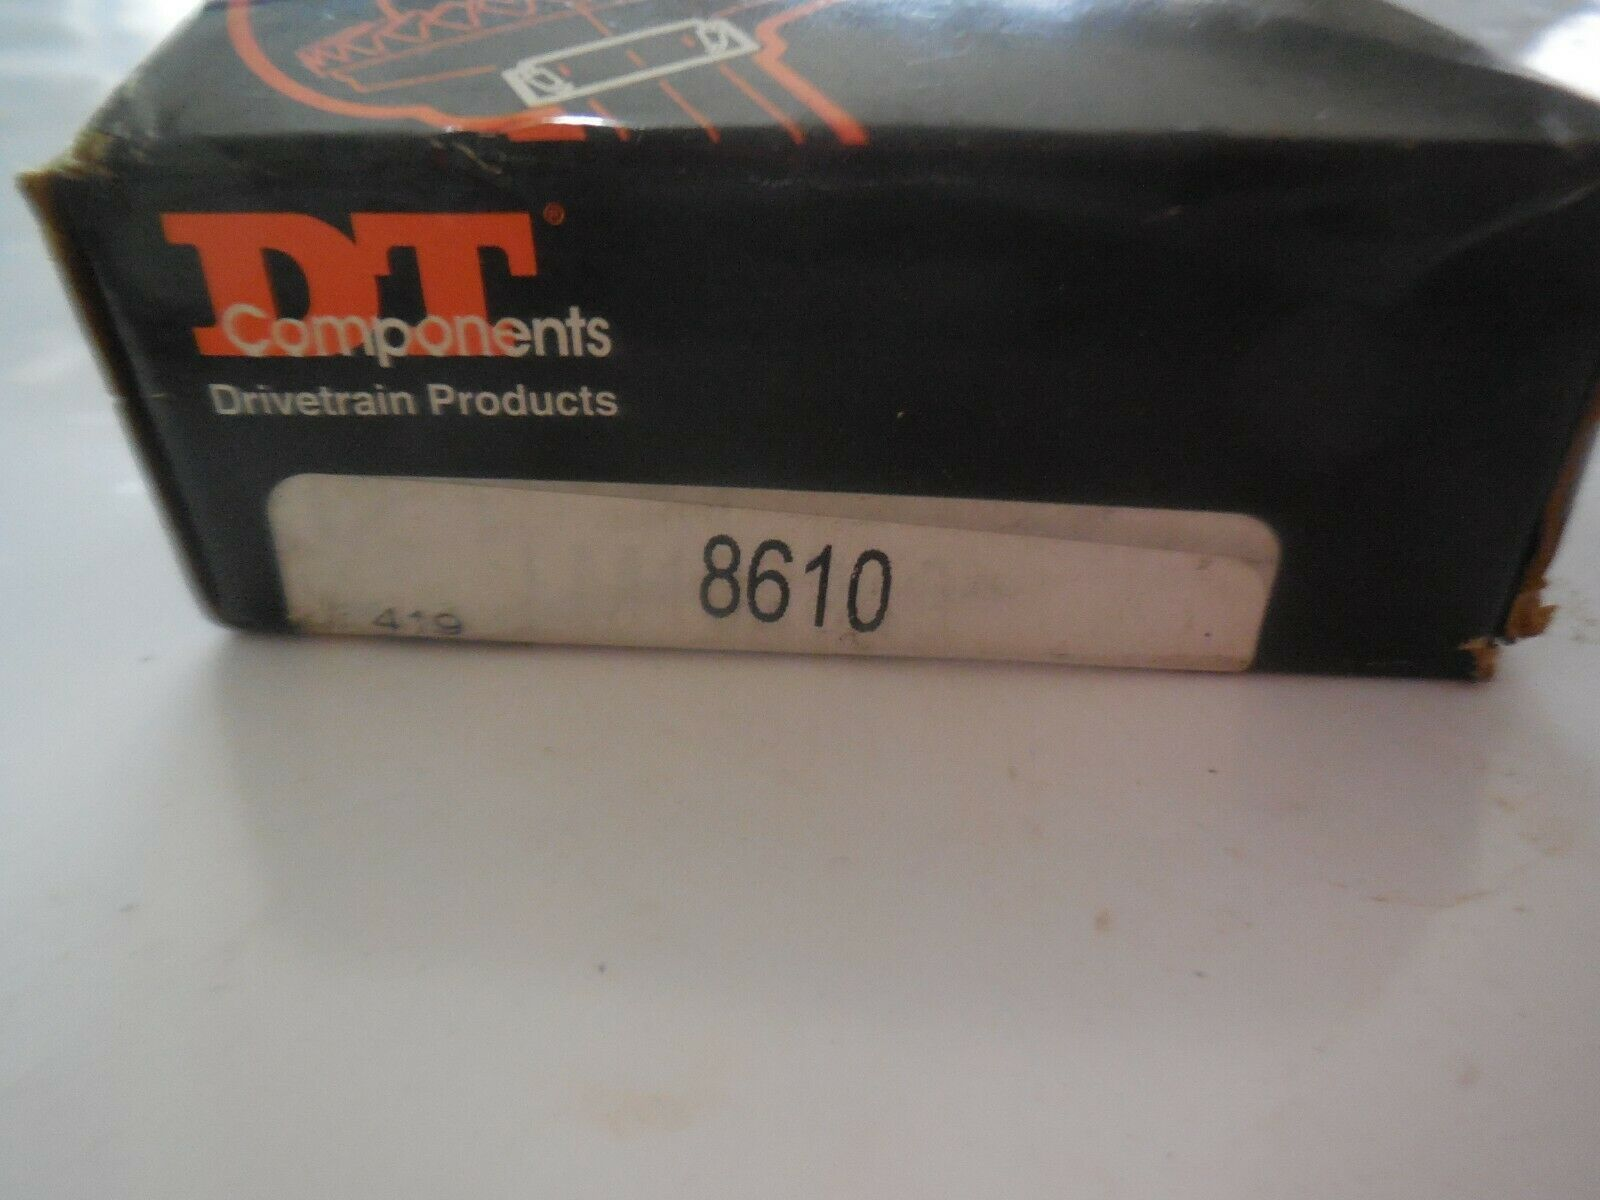 DT Components Drive Train Products 8610